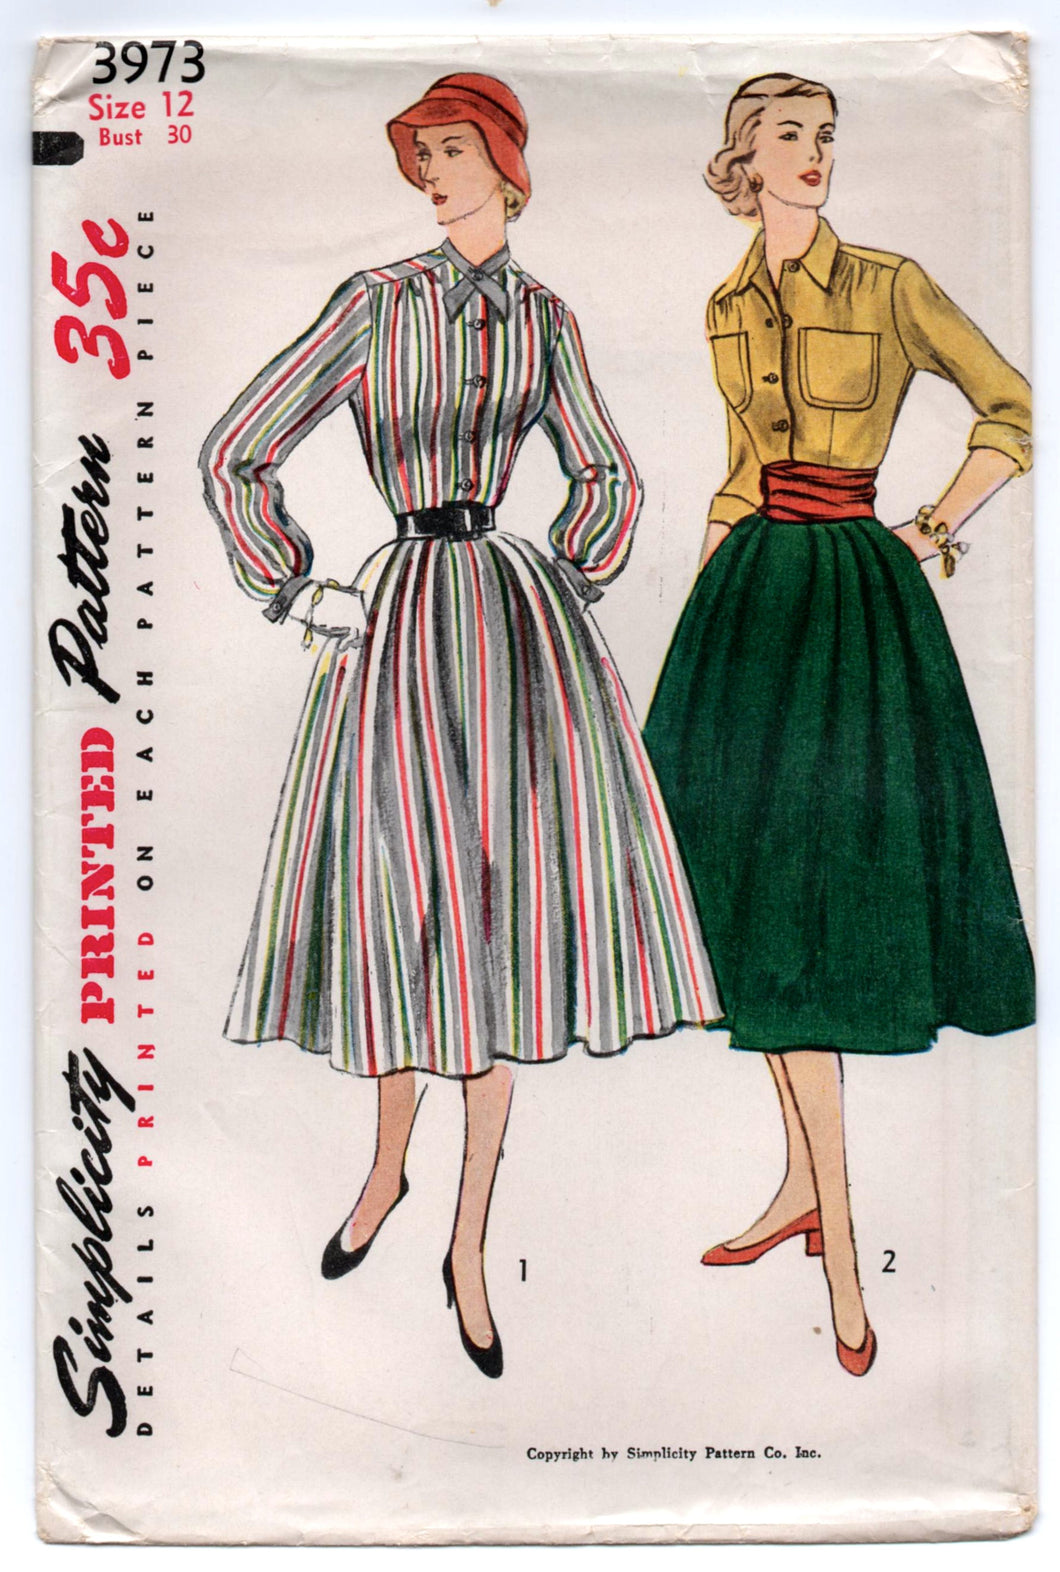 1950's Simplicity Shirtwaist Dress and Full Skirt pattern - Bust 30